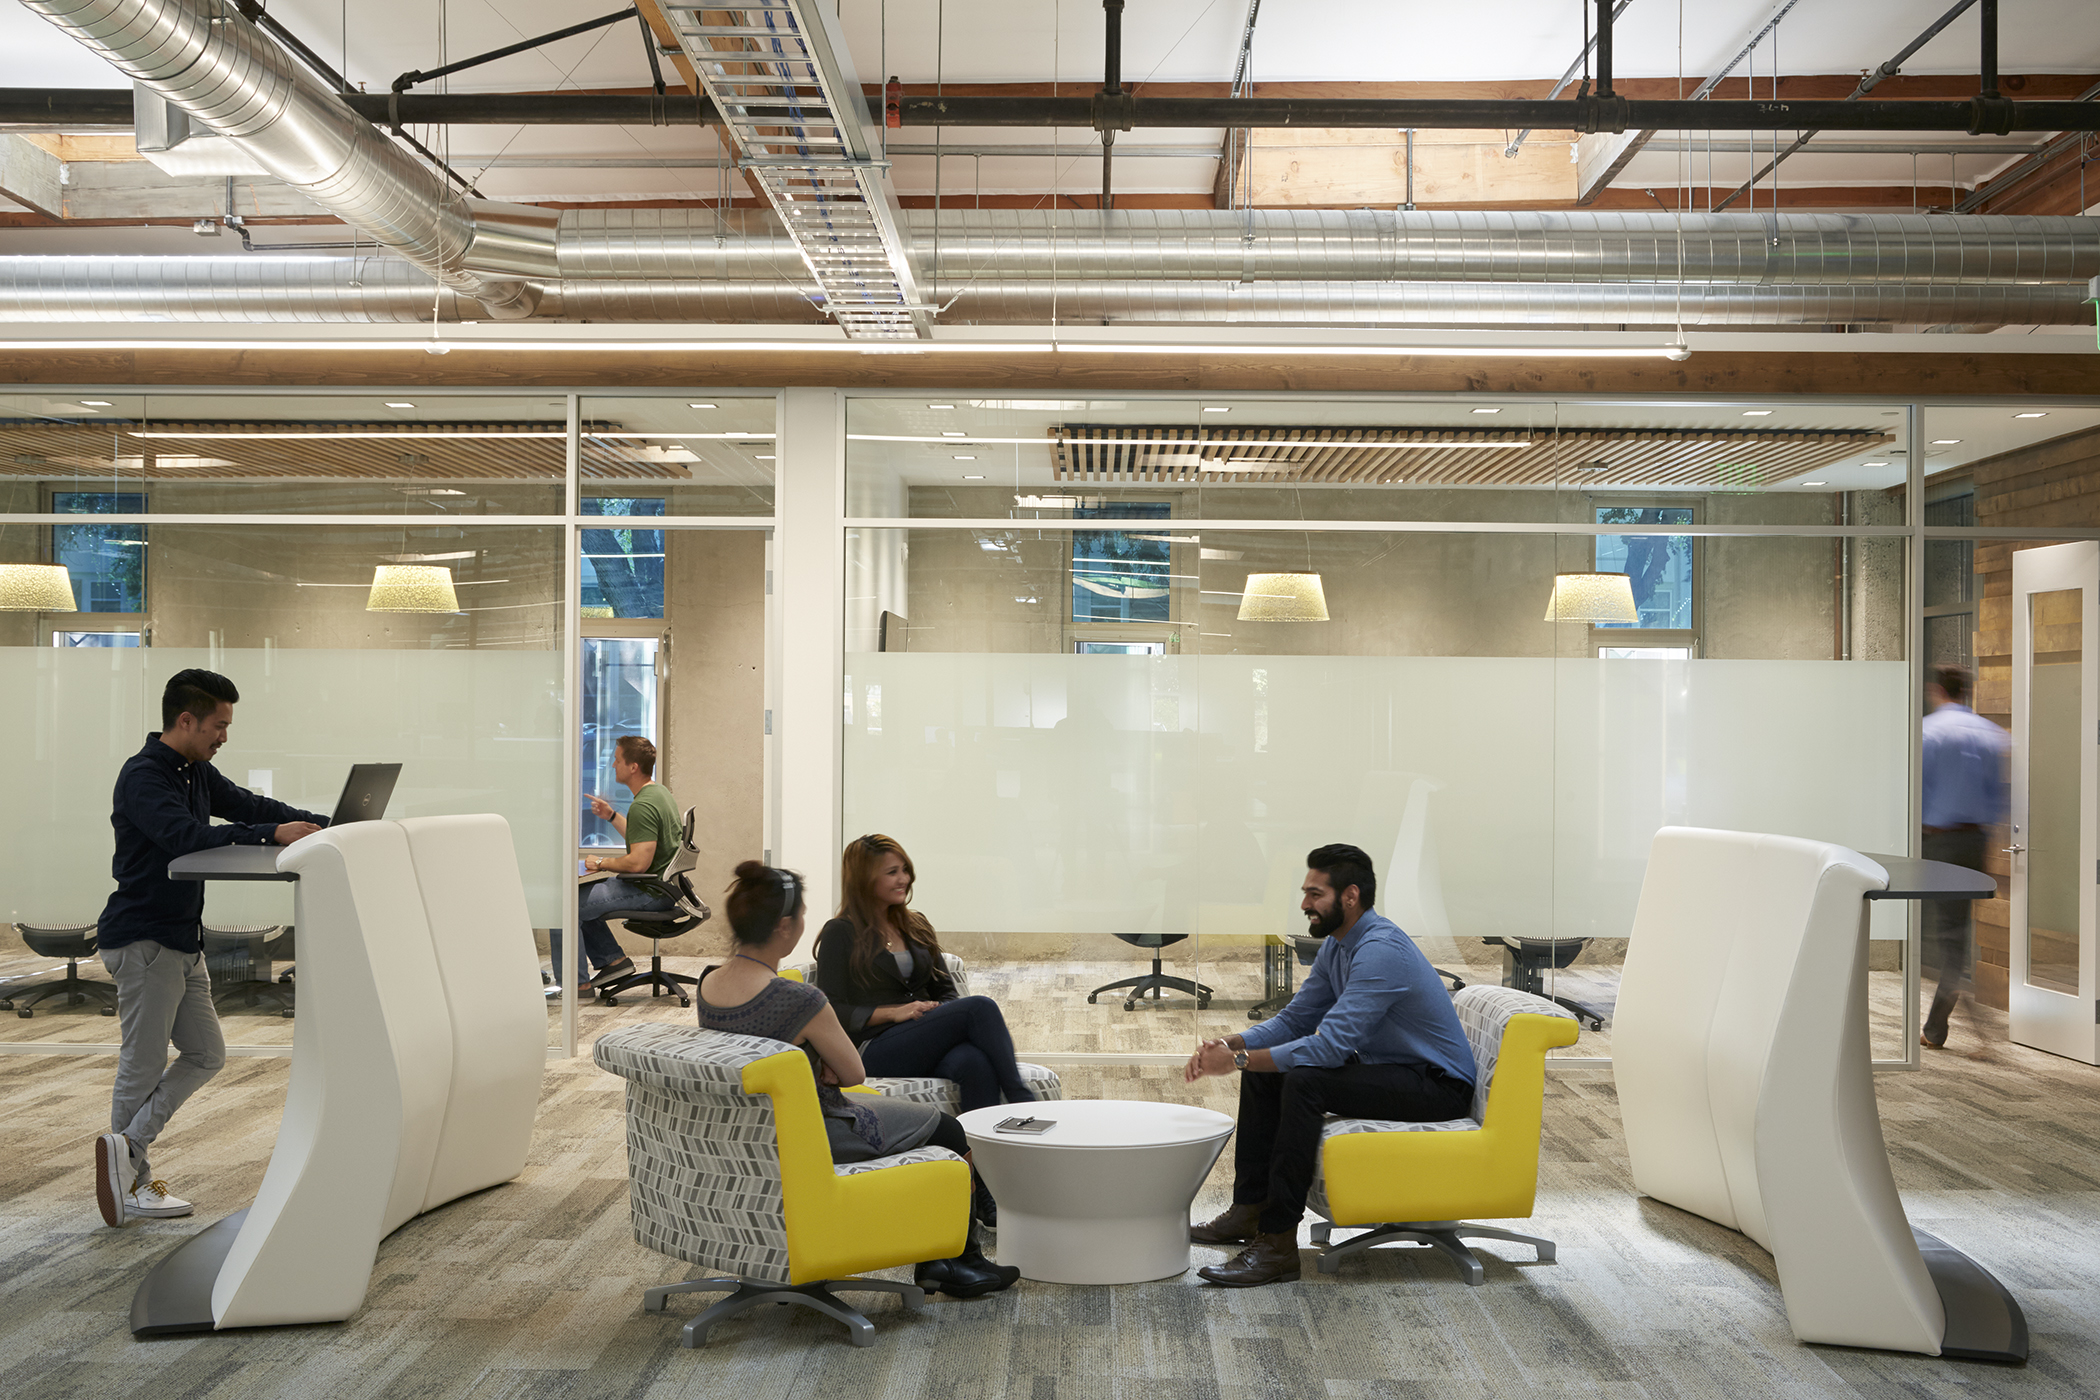 10 High-Tech Office Designs that Rewrite the Rules